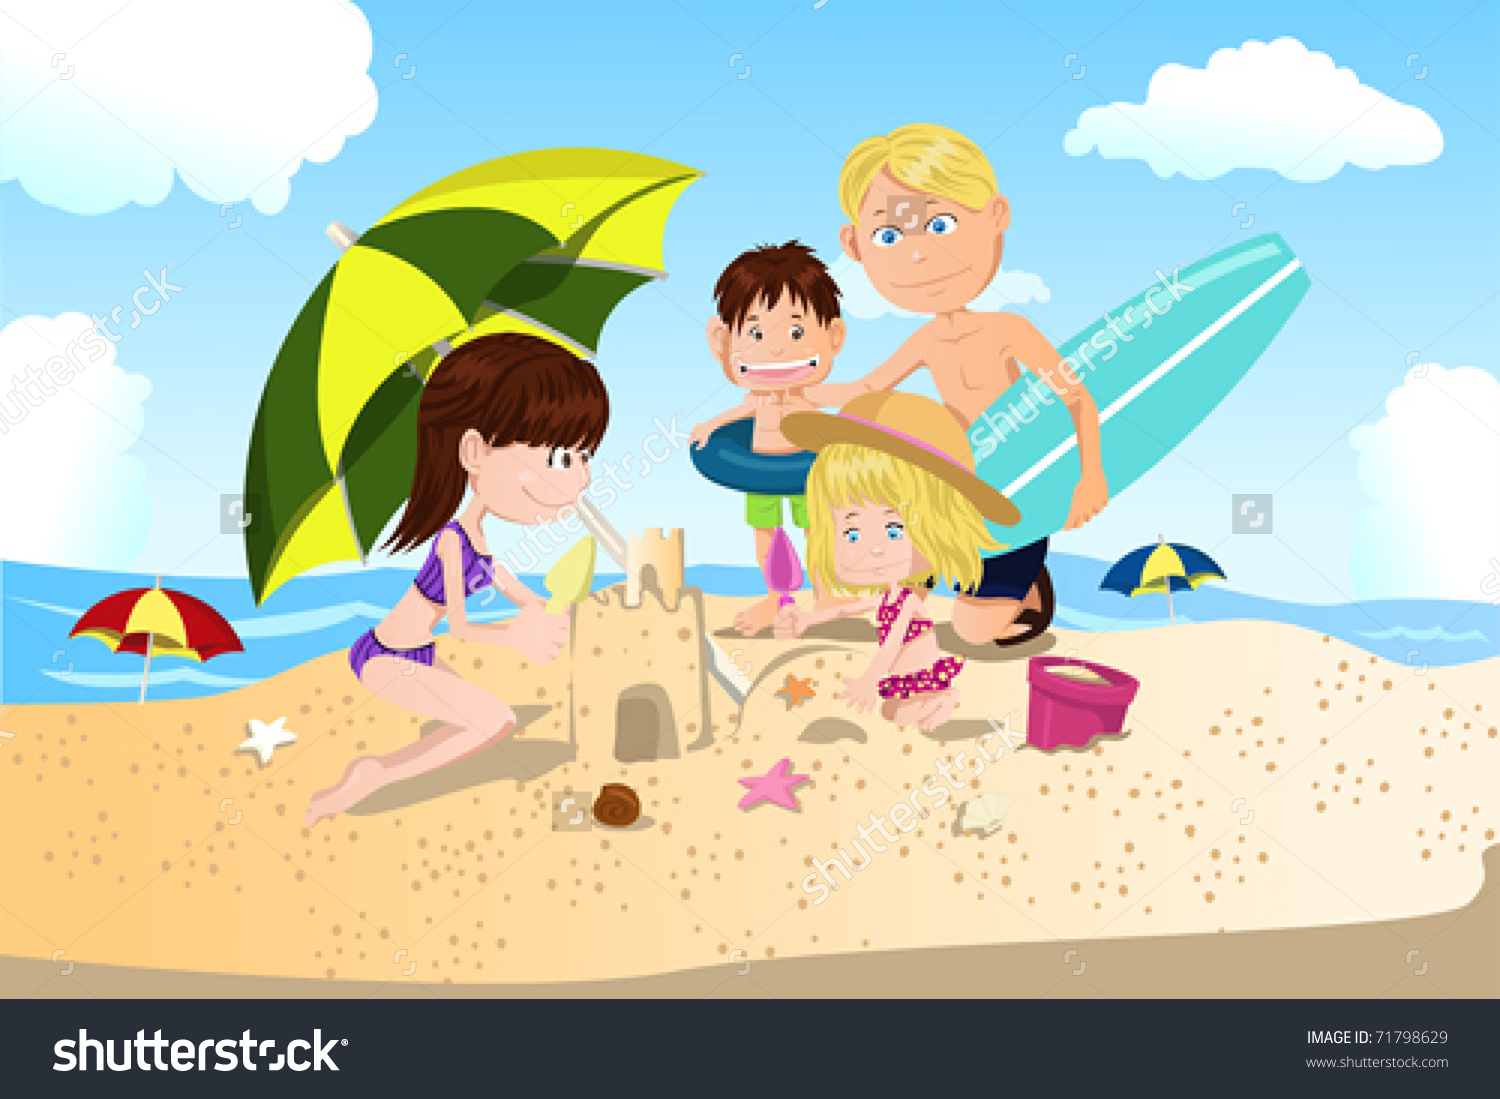 Family Spending Time Together Clipart.